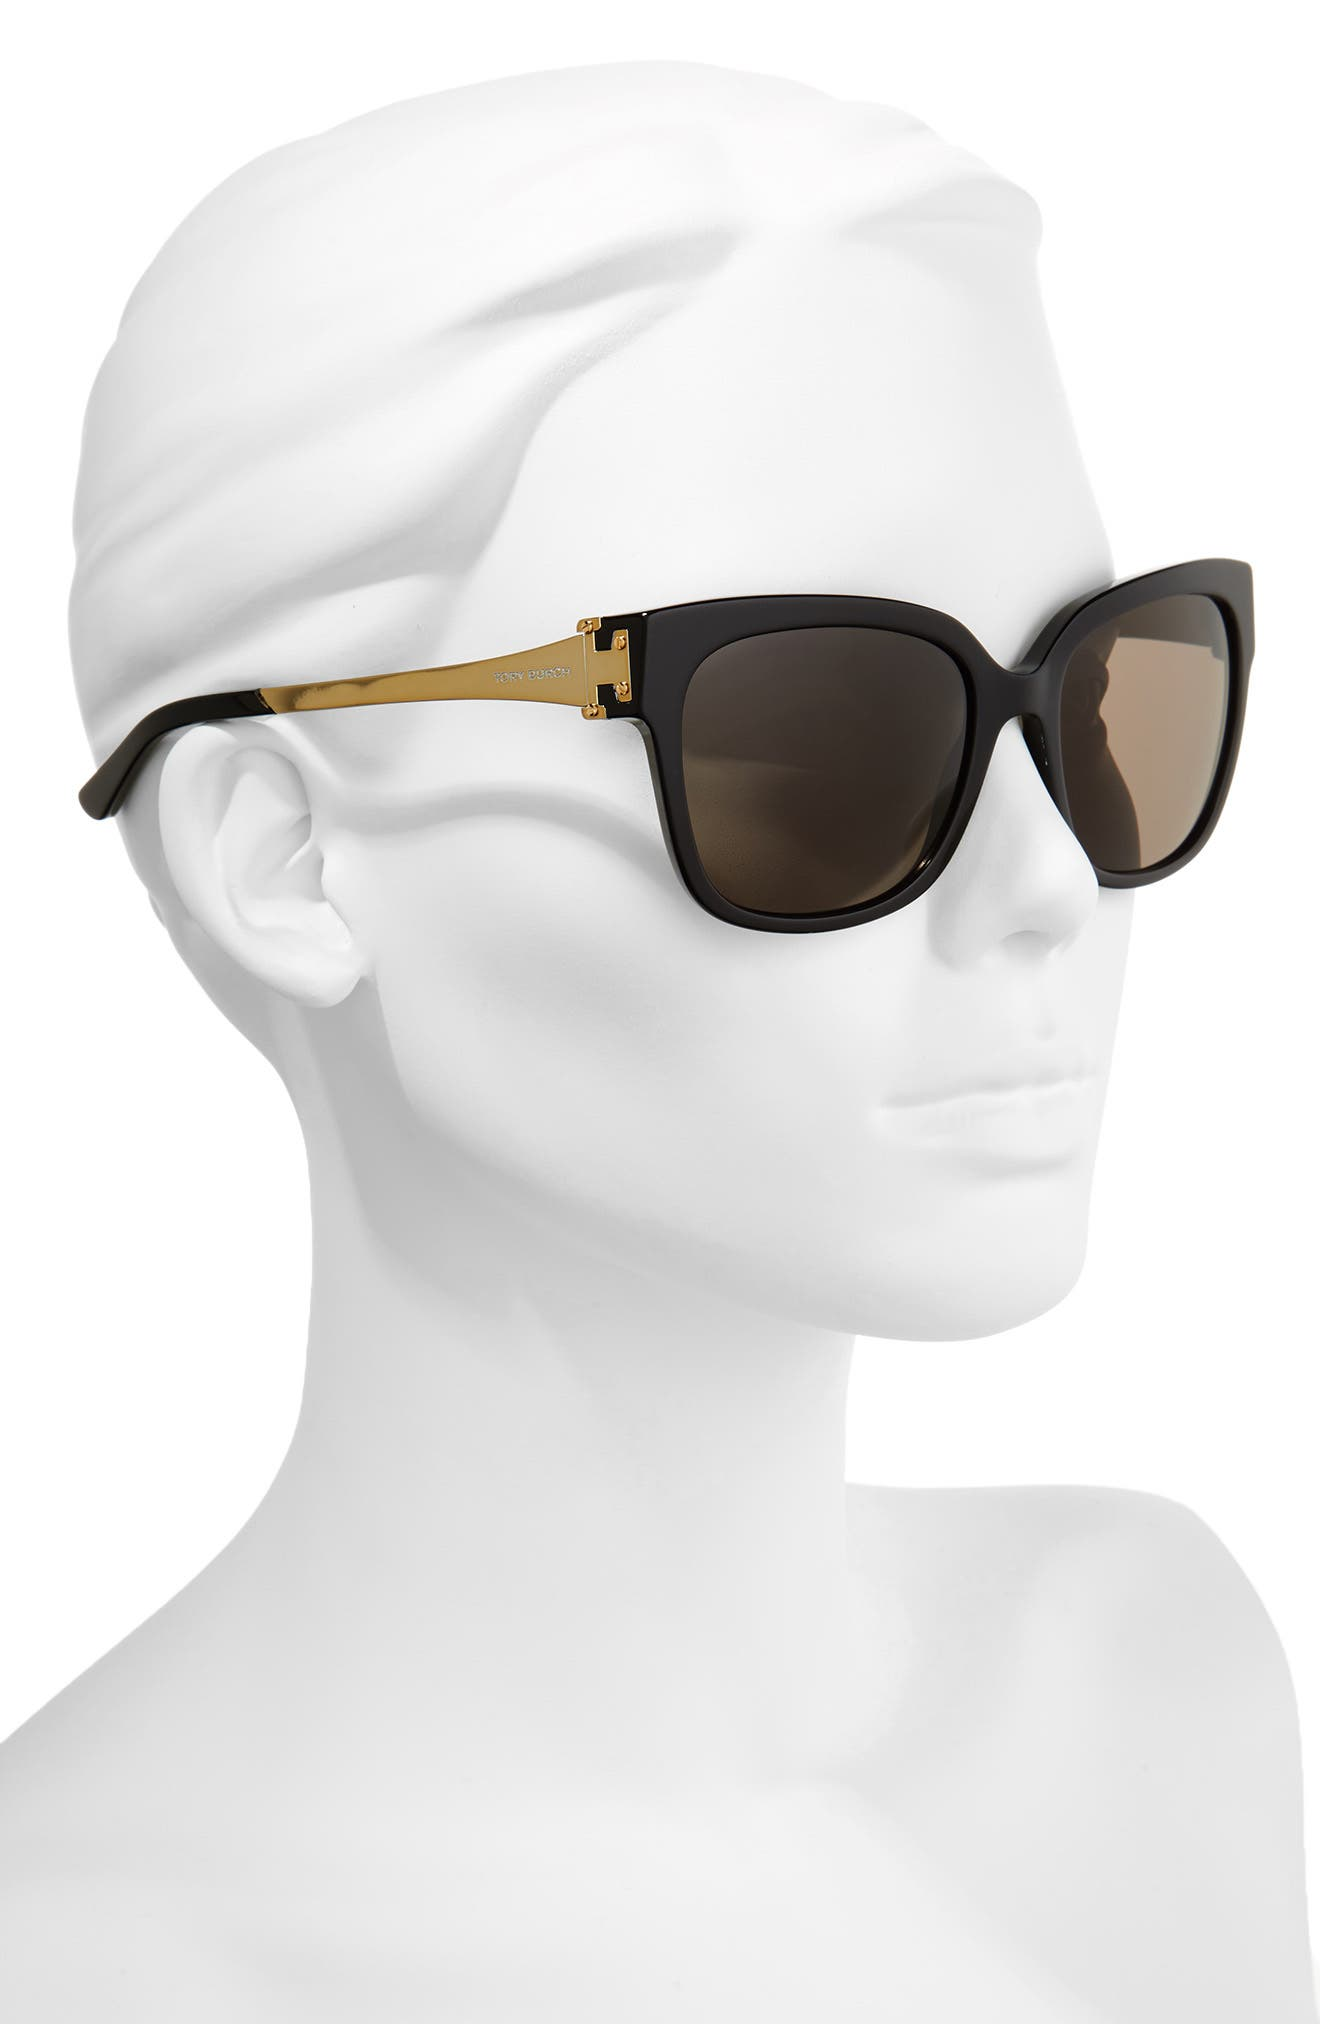 57mm Sunglasses,                             Alternate thumbnail 2, color,                             Black